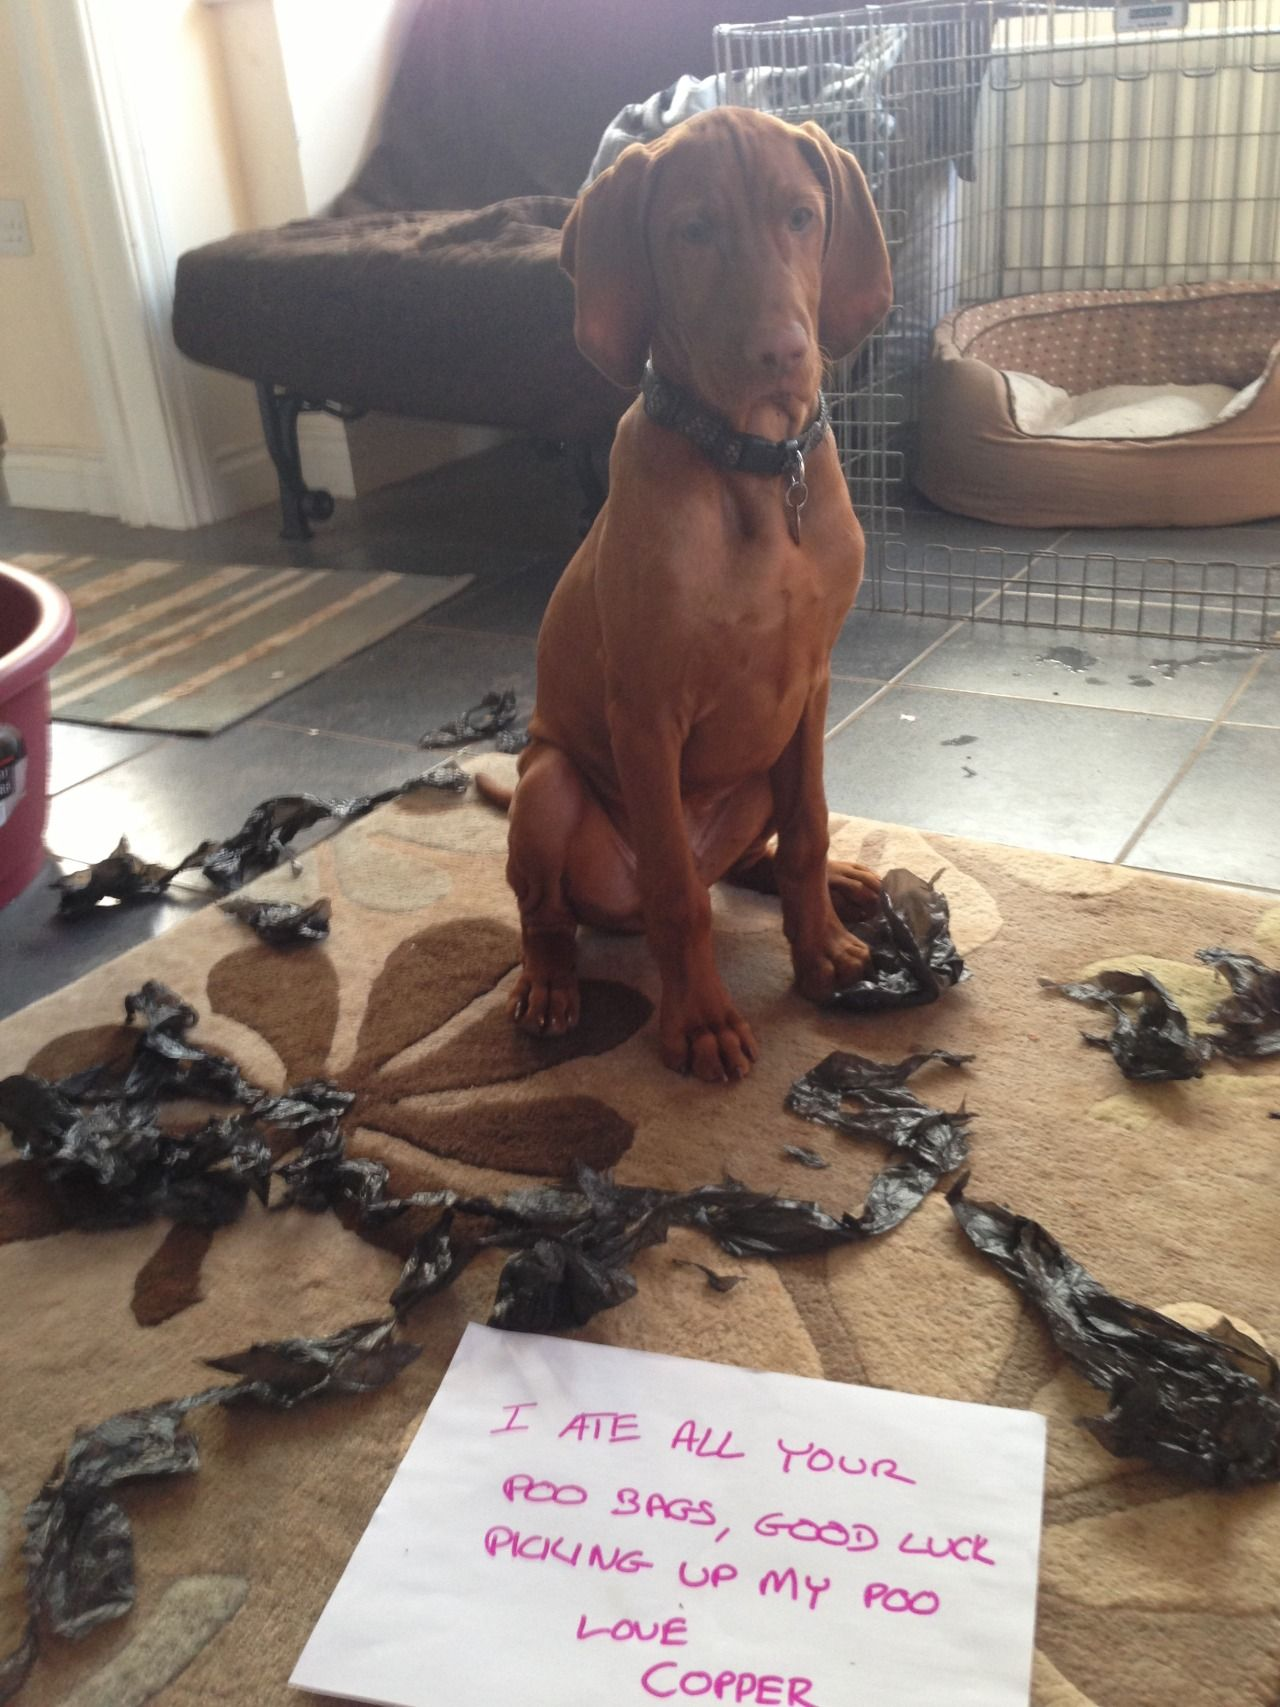 Dog Shame — I ate all your poo bags, good luck picking up